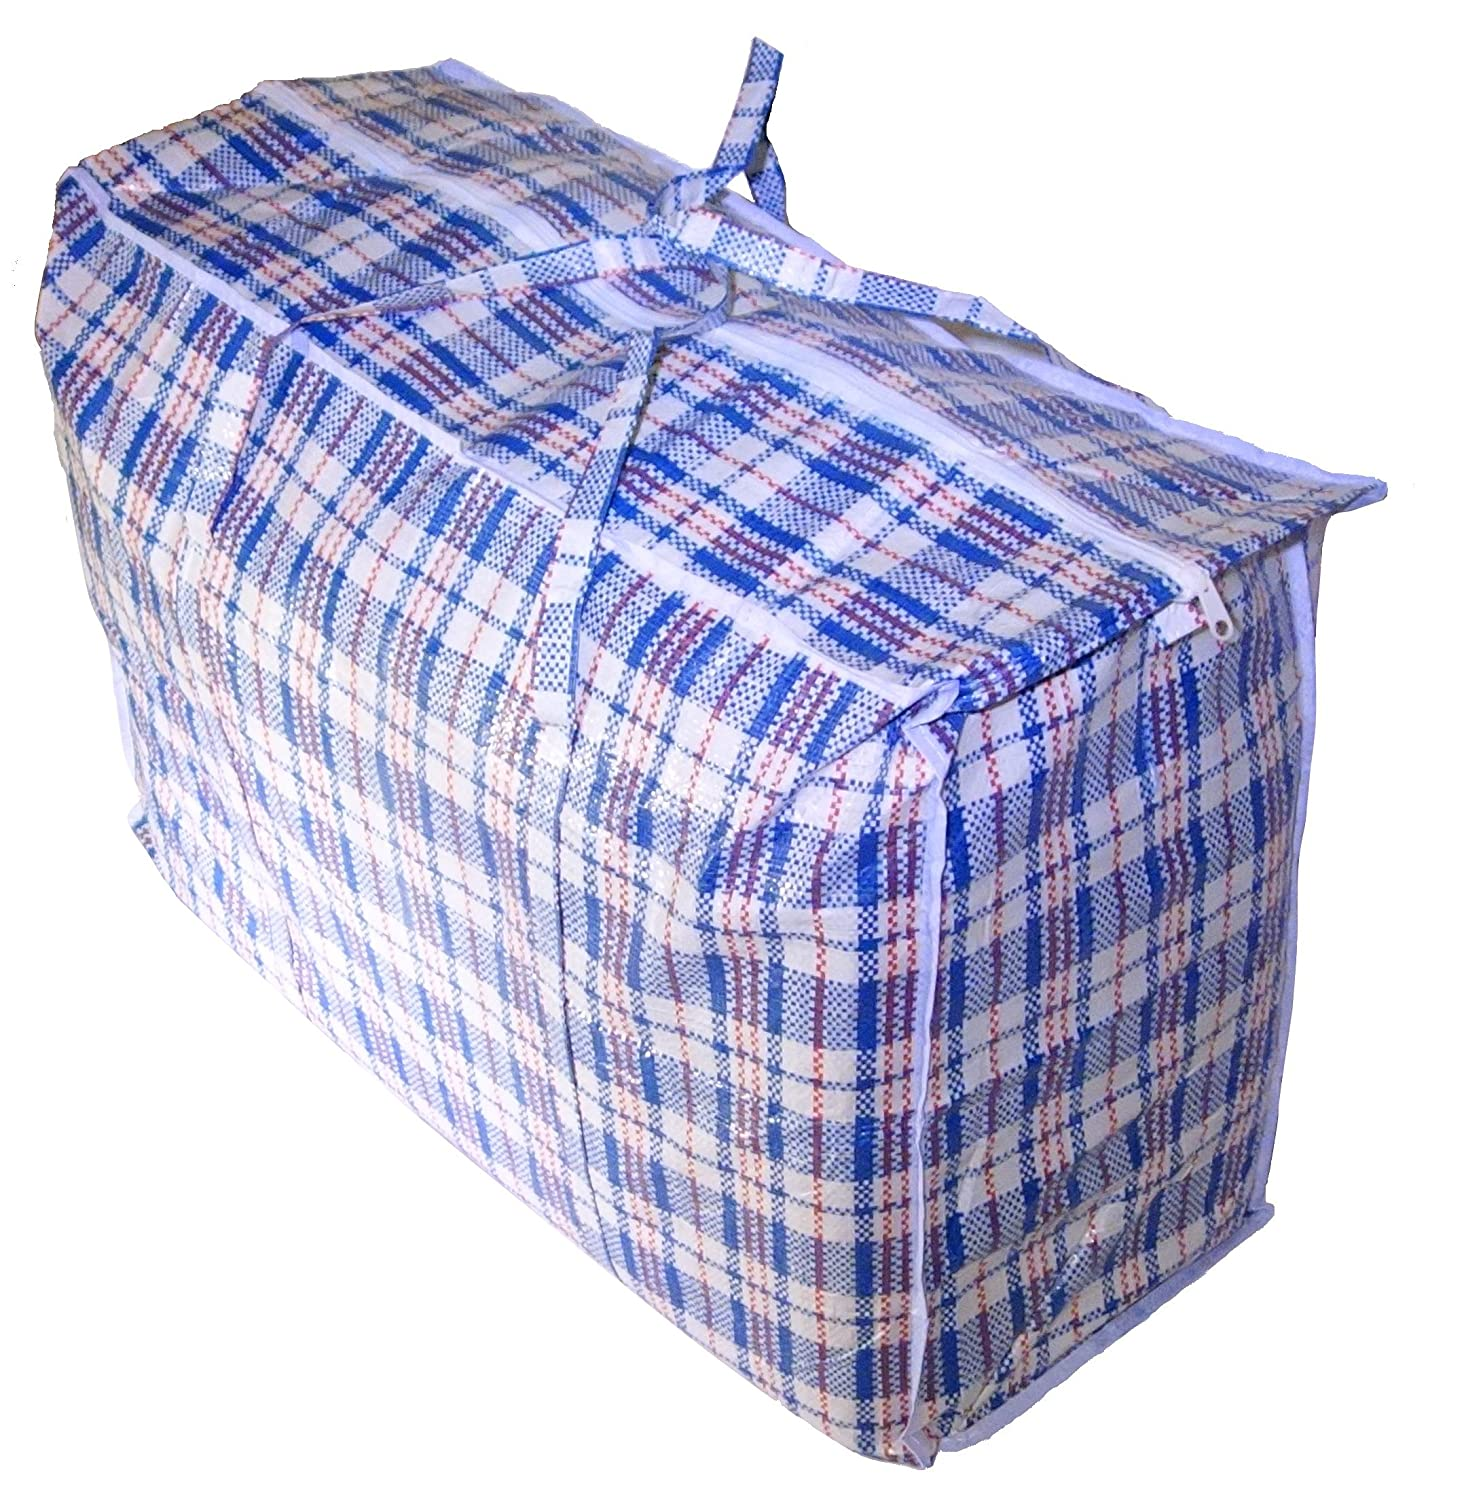 Amazon.com: Jumbo Plastic Checkered Storage Laundry Shopping Bags ...